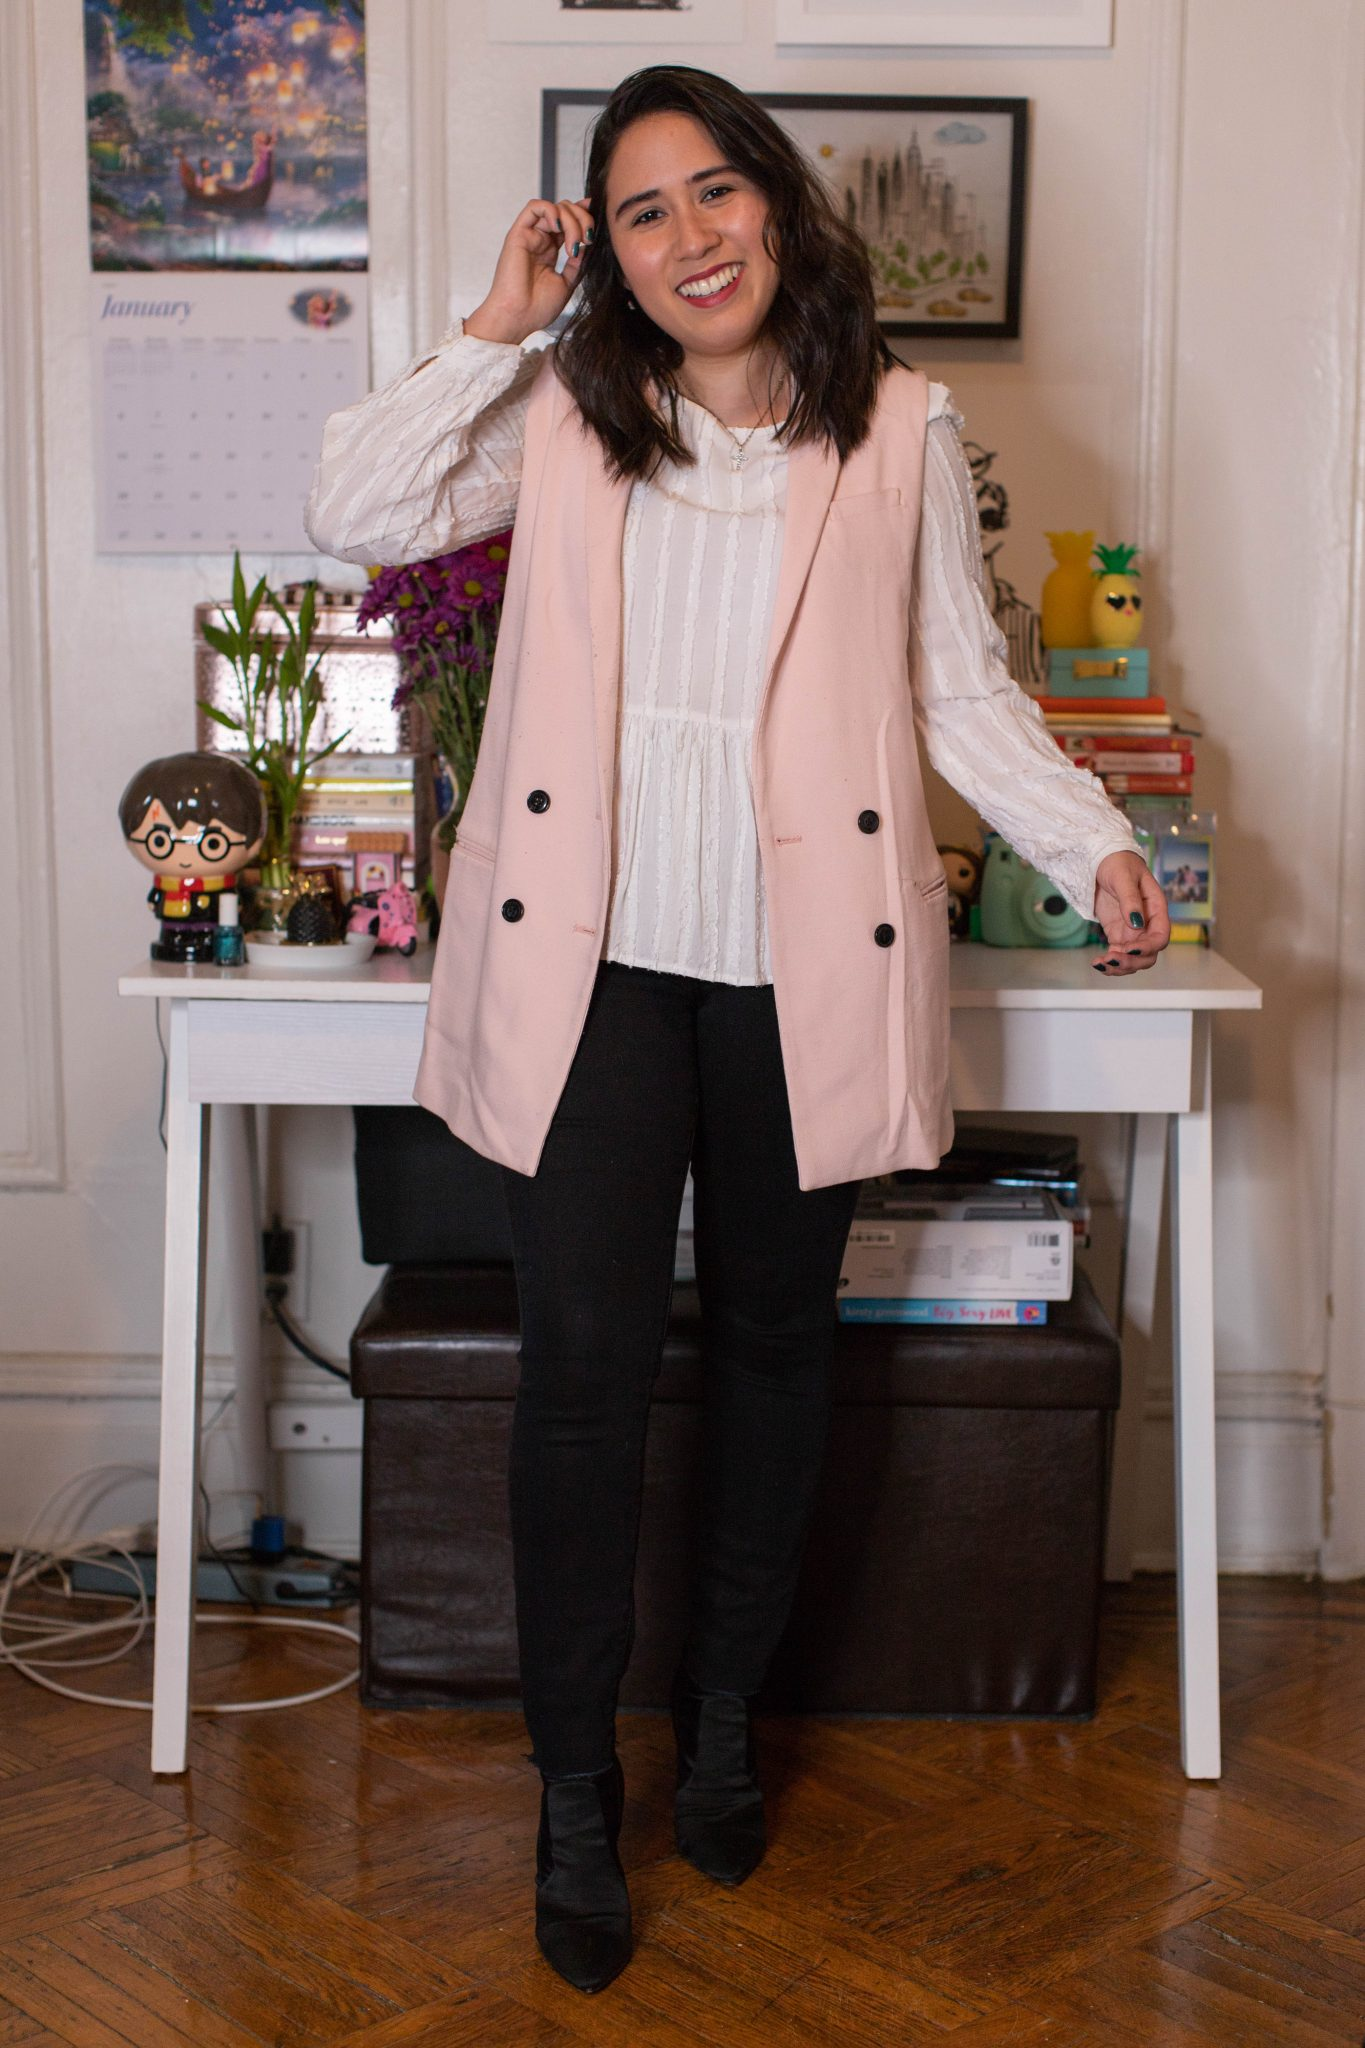 Winter Work Outfits featured by top US fashion blogger, Live Laugh Linda; Image of woman wearing ASOS vest, Loft peplum blouse, Levi's skinny jeans and Steve Madden booties